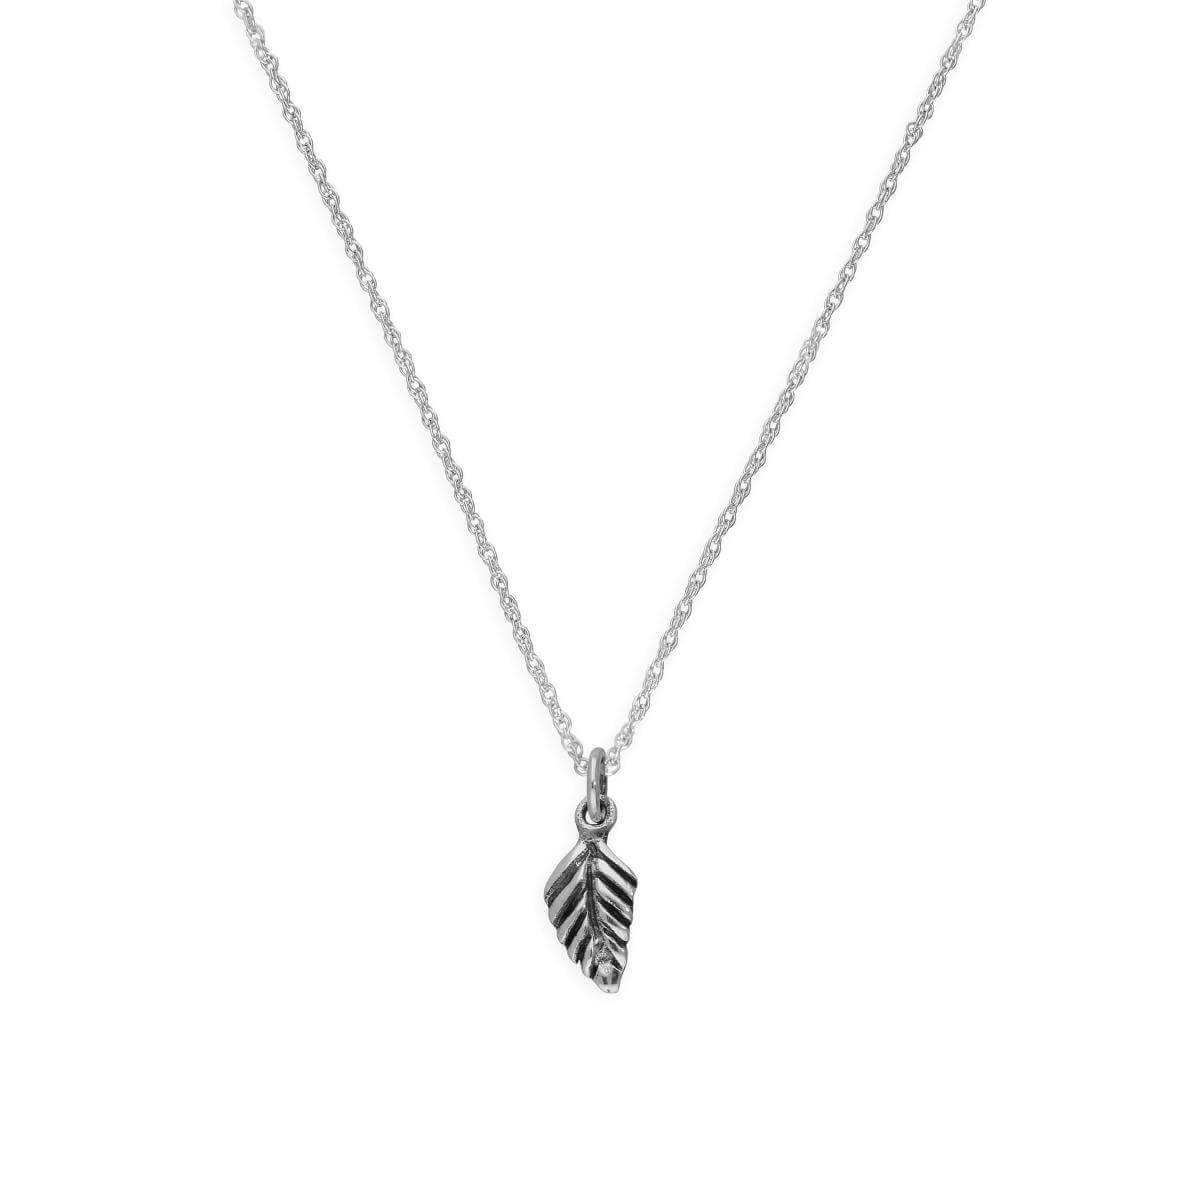 Sterling Silver Little Leaf Pendant Necklace 14 - 22 Inches